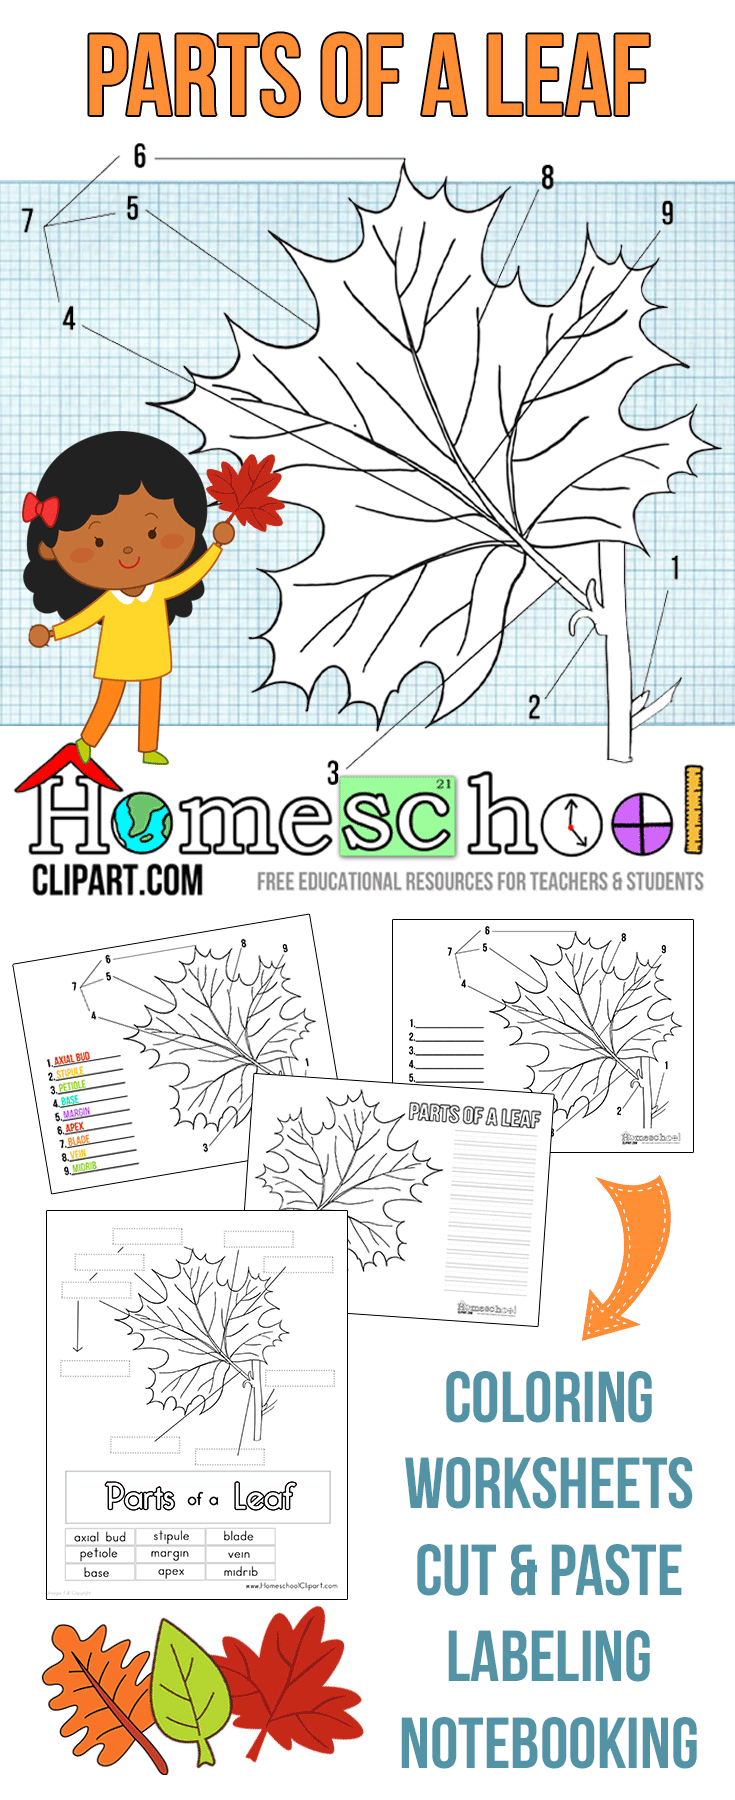 Parts Of A Leaf Printables | Autumn And Fall Homeschool Activities | Free Printable Leaf Worksheets